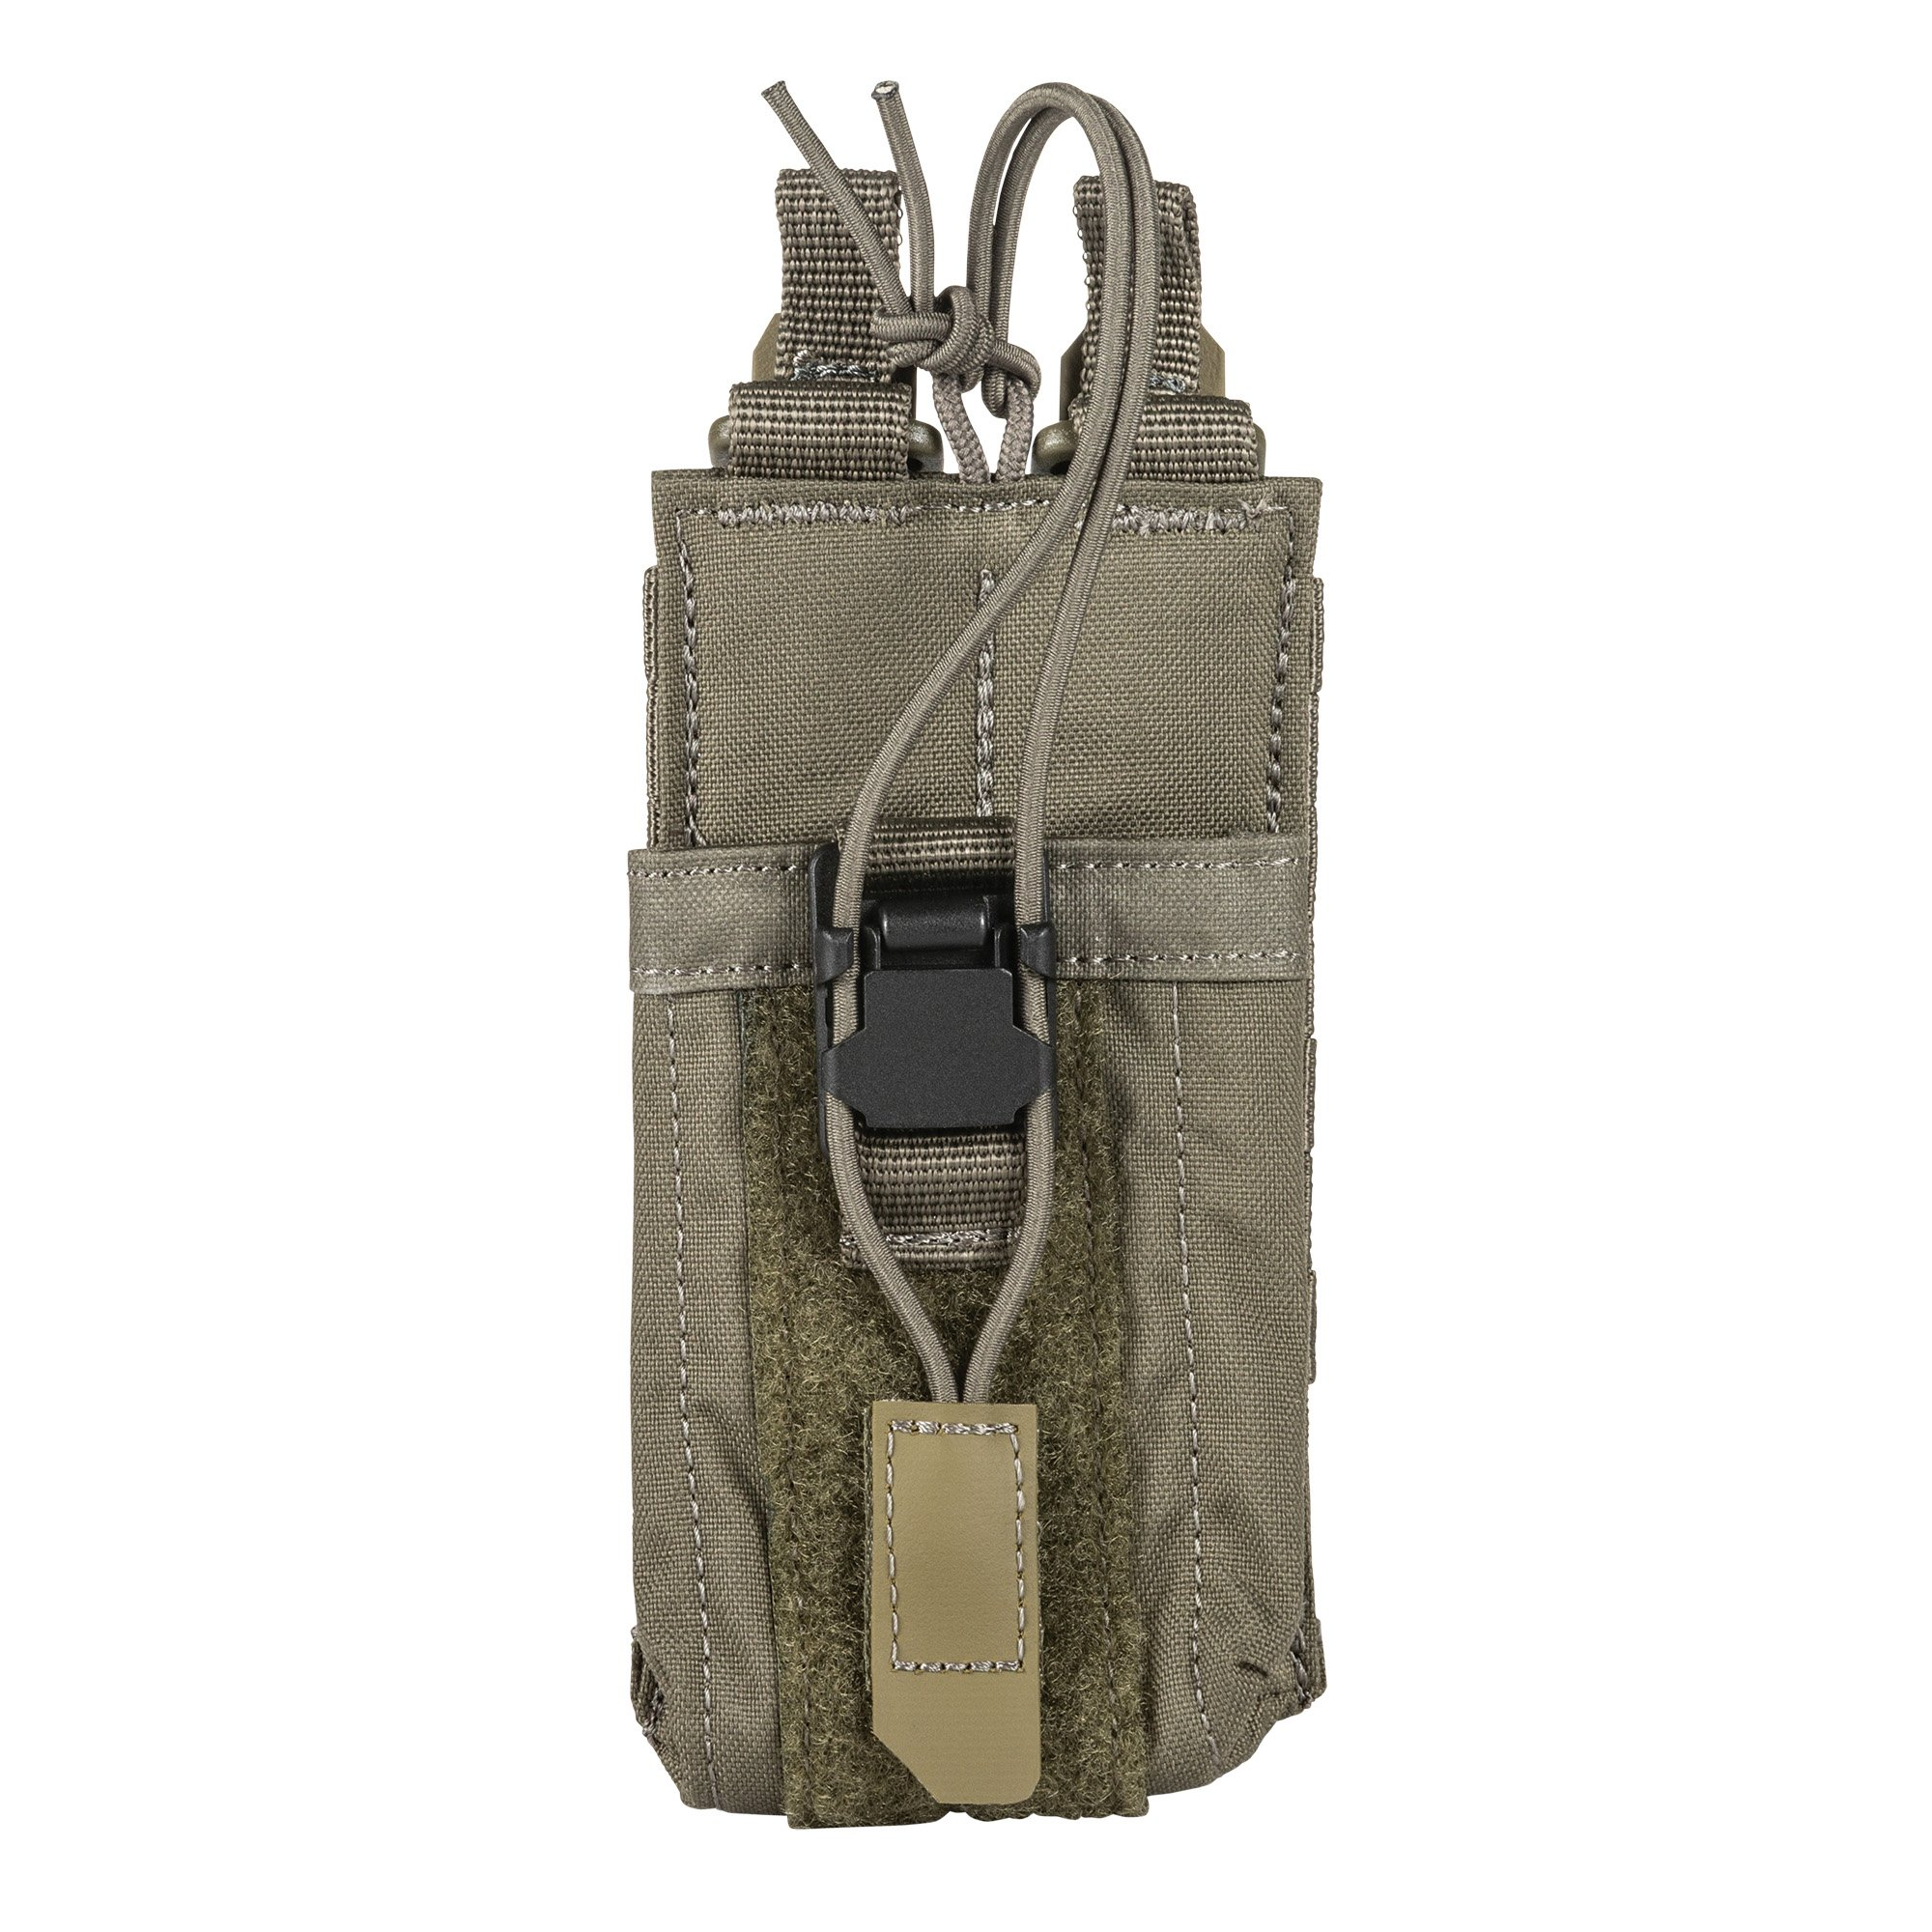 FLEX RADIO POUCH – Ranger Green